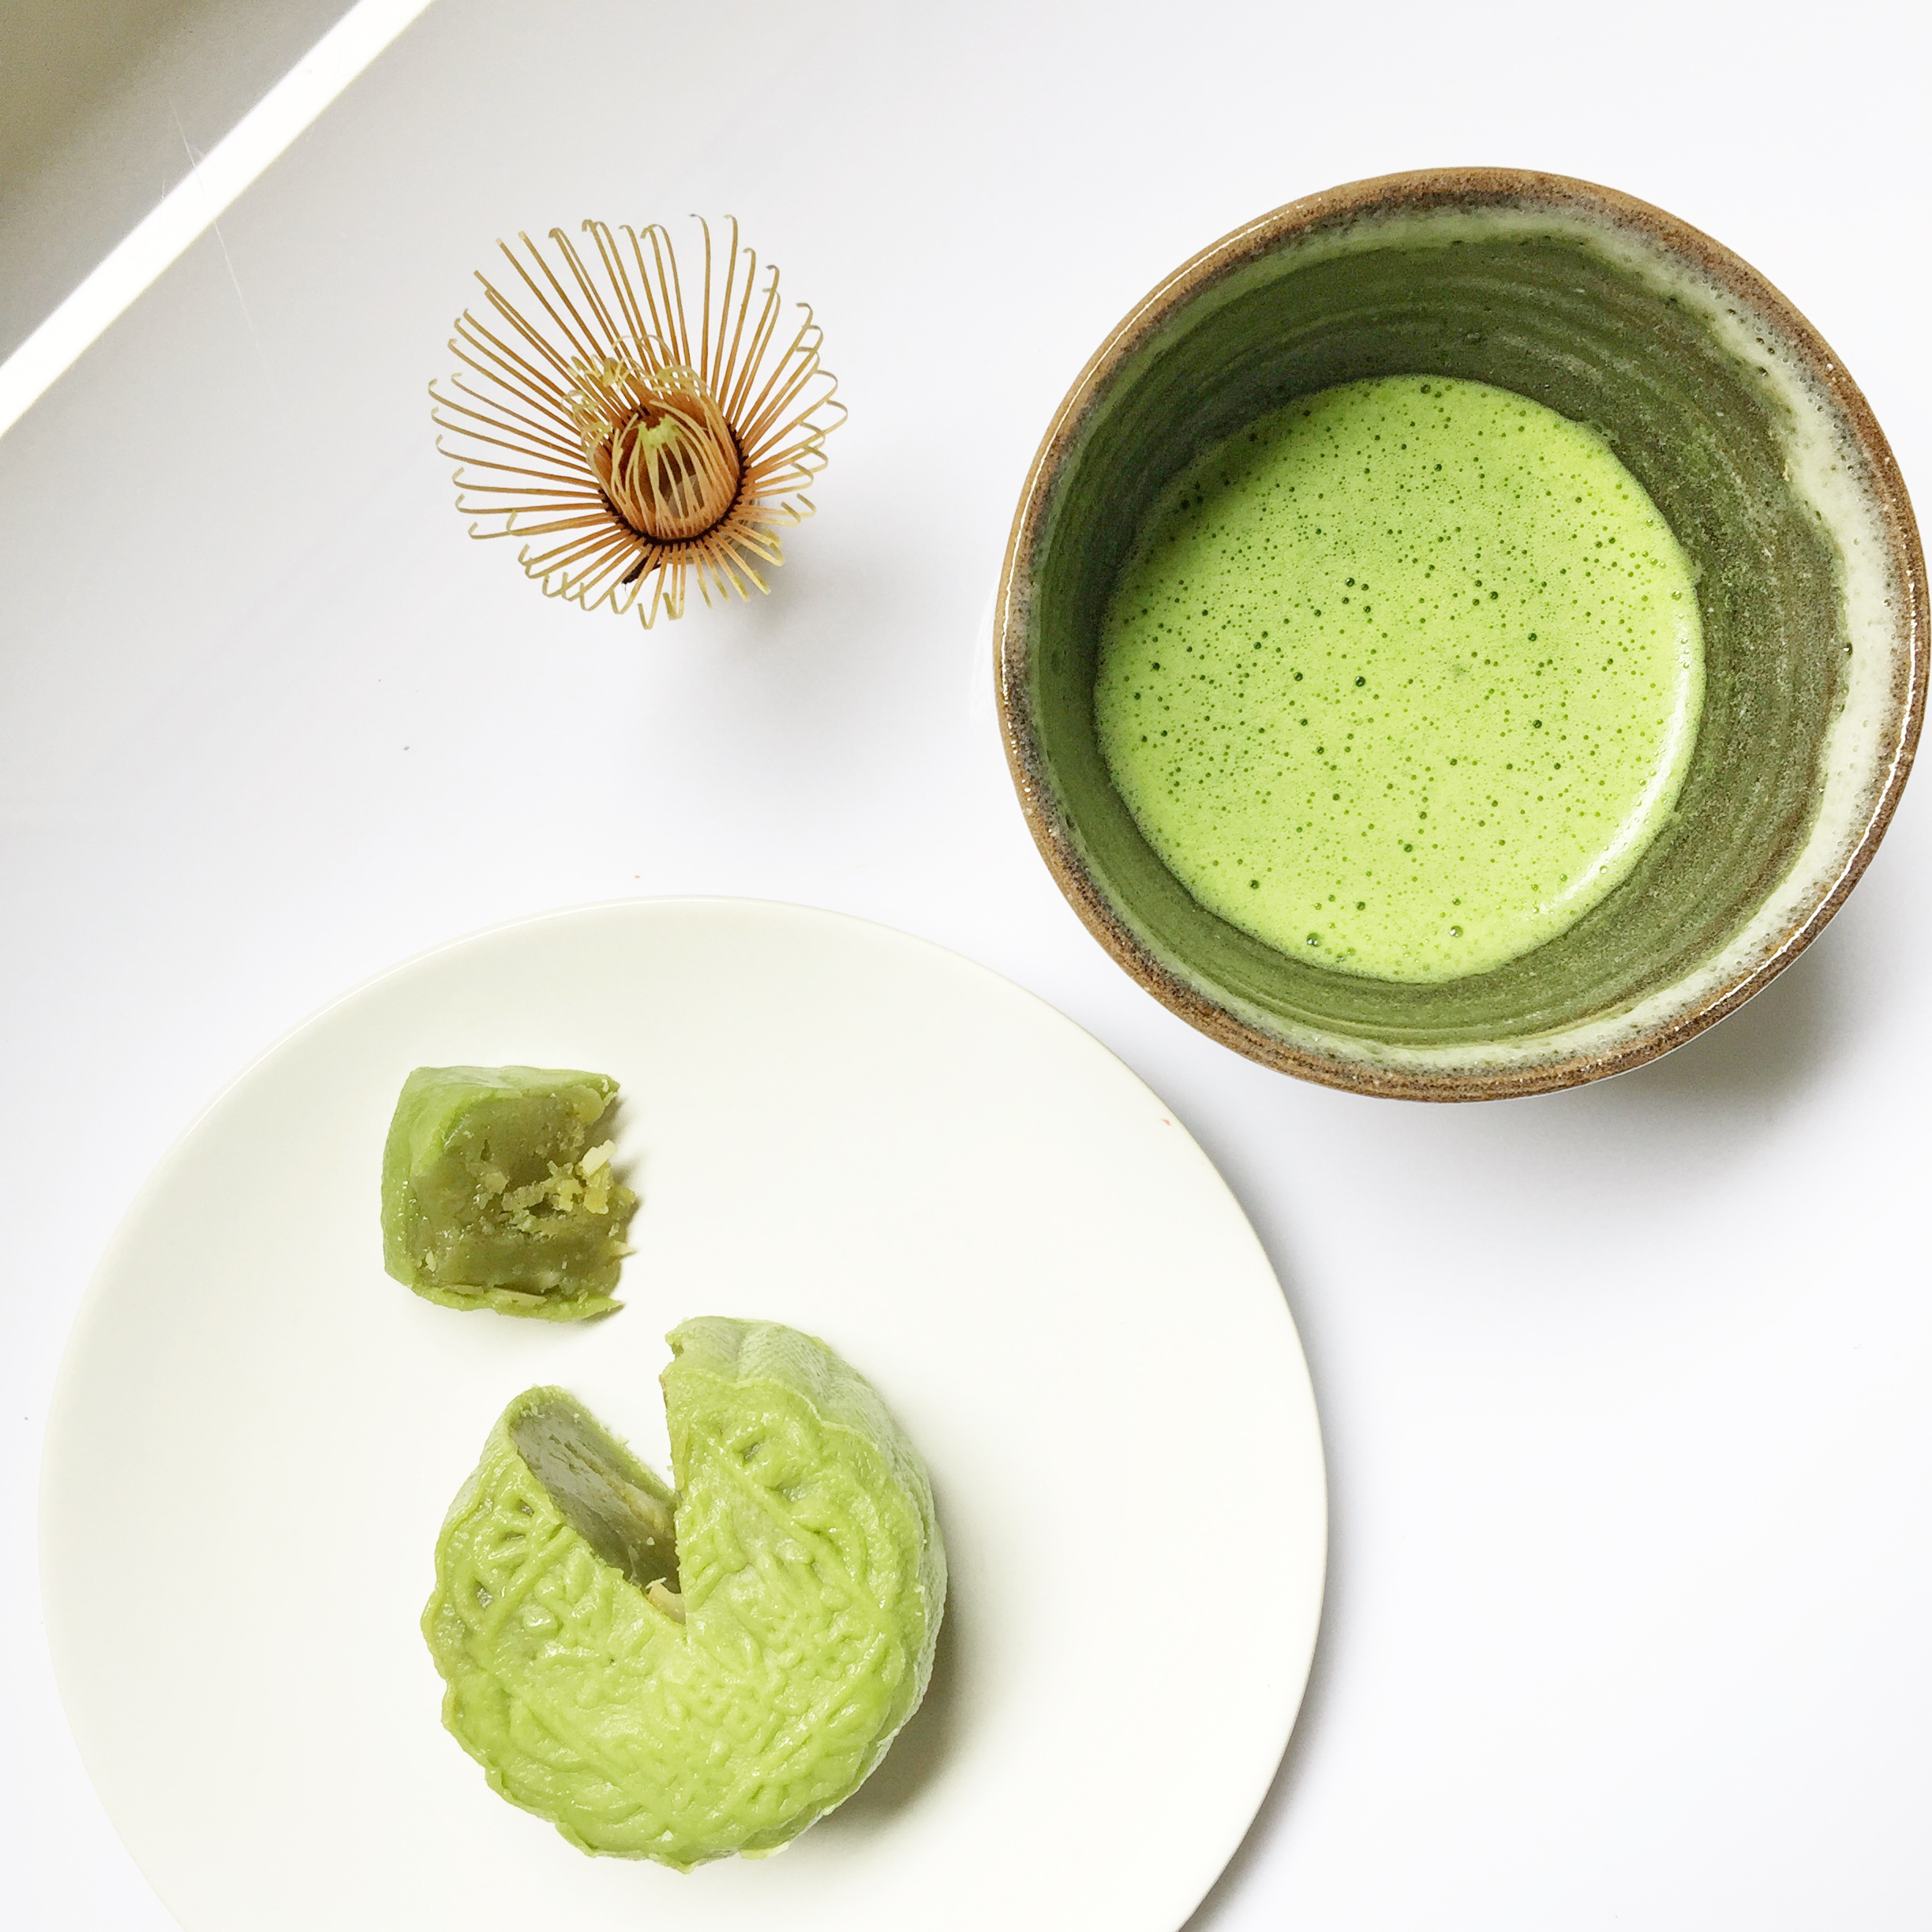 Janice Hunter's tea bowl used to whisk matcha, served alongside matcha mooncakes from Intercontinental Singapore.